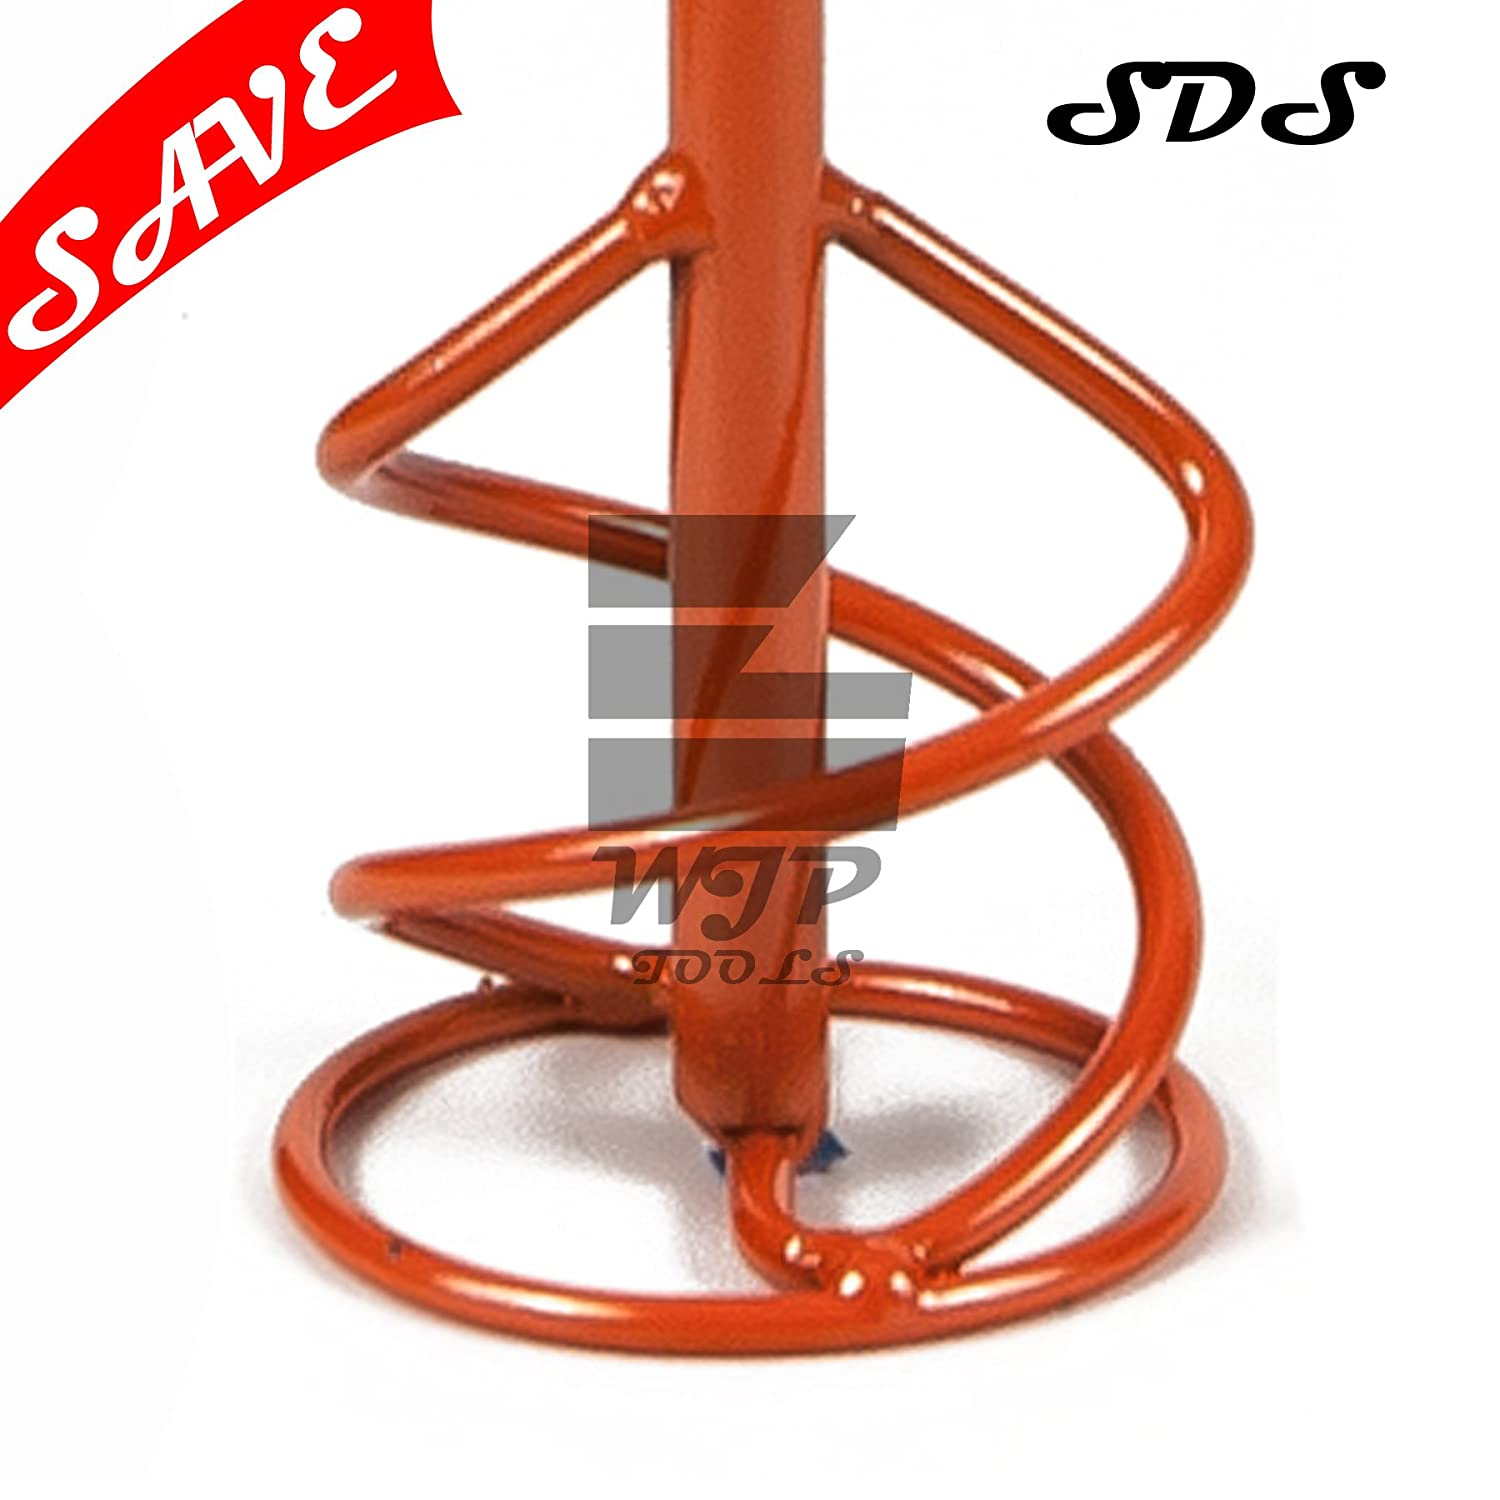 PROPELLER Mixing Paddle 85 x 400 mm SDS PLUS Mixer, Plaster, Render Whisk, Stirrer PROPER-TOOLS (P44/1184)